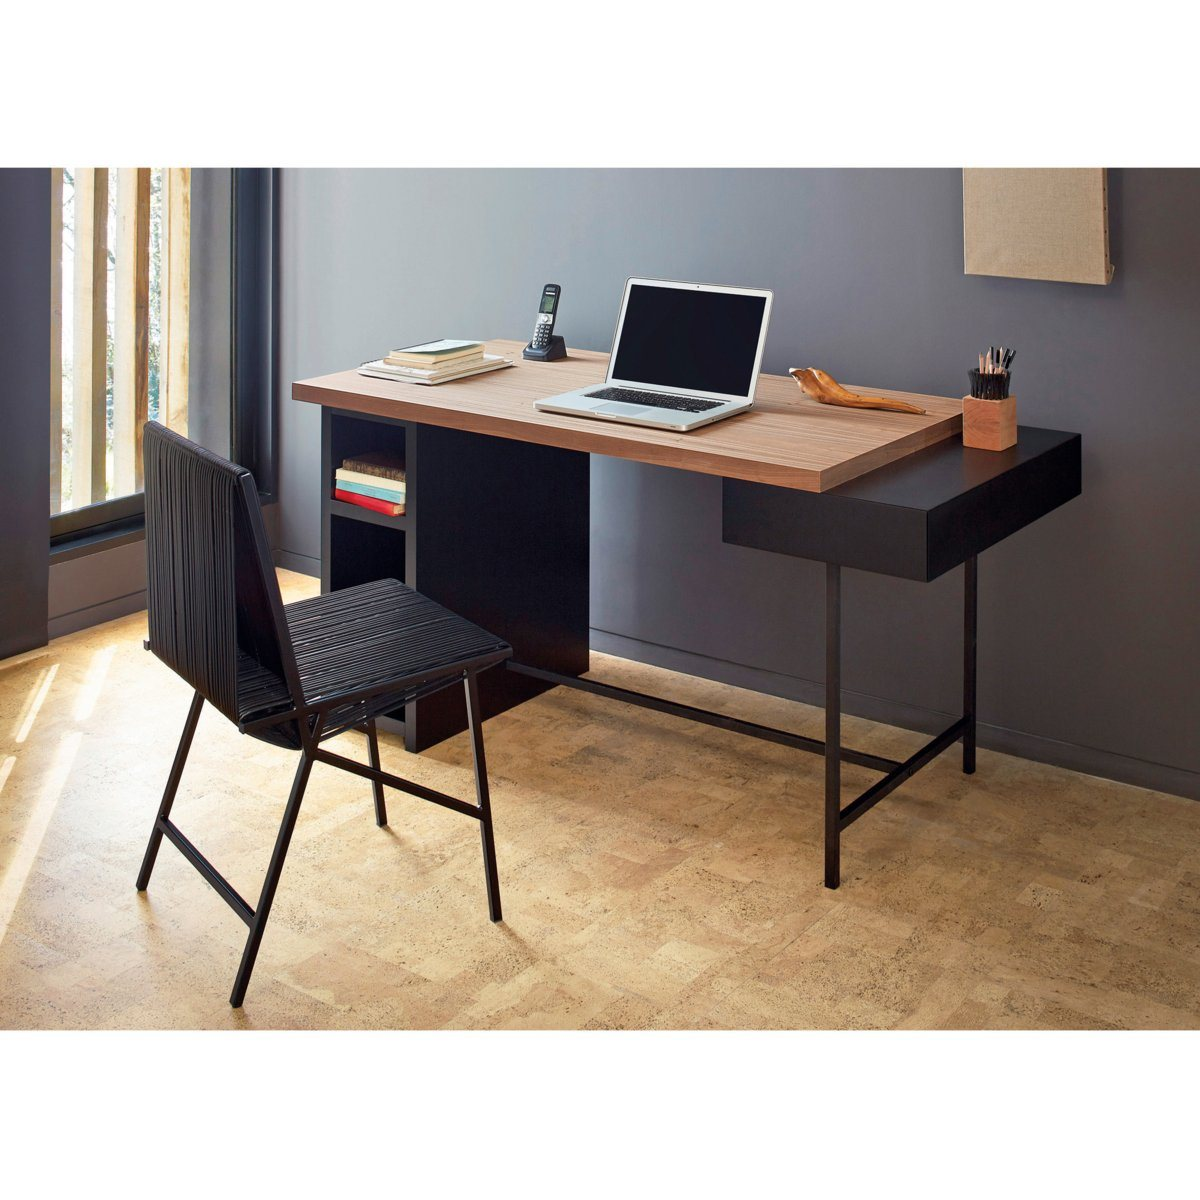 Bureau cr ateur design studio pool bensimon bureau la for Bureau design 3 suisses